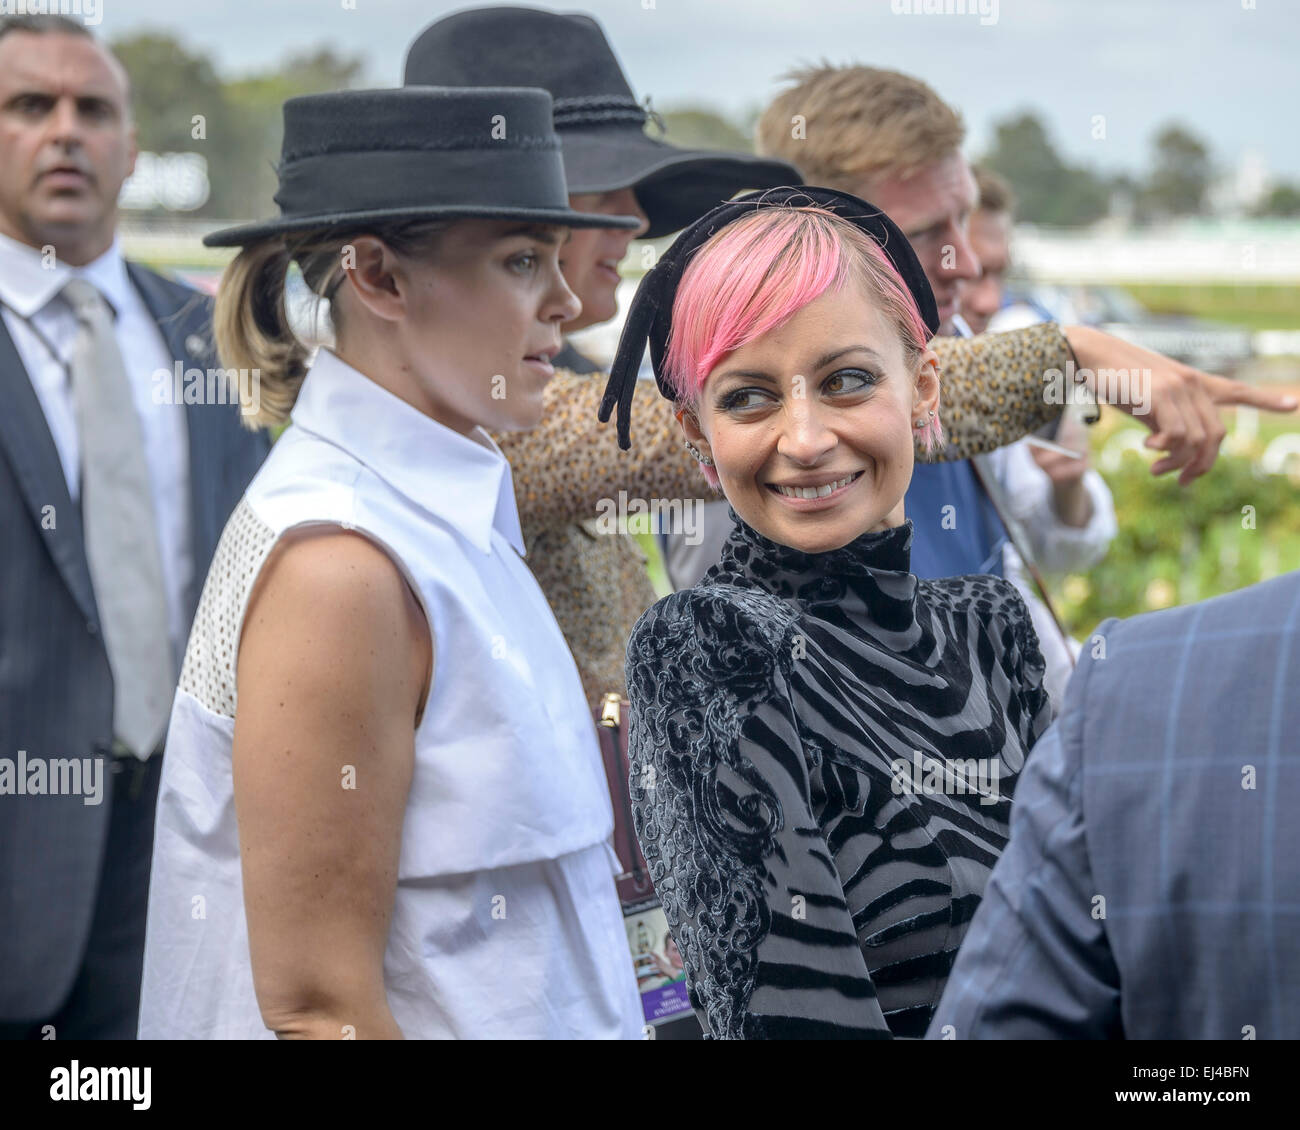 Sydney, AUSTRALIA - March 21, 2015: American designer and TV star Nicole Richie jetted into Sydney as the ambassador - Stock Image